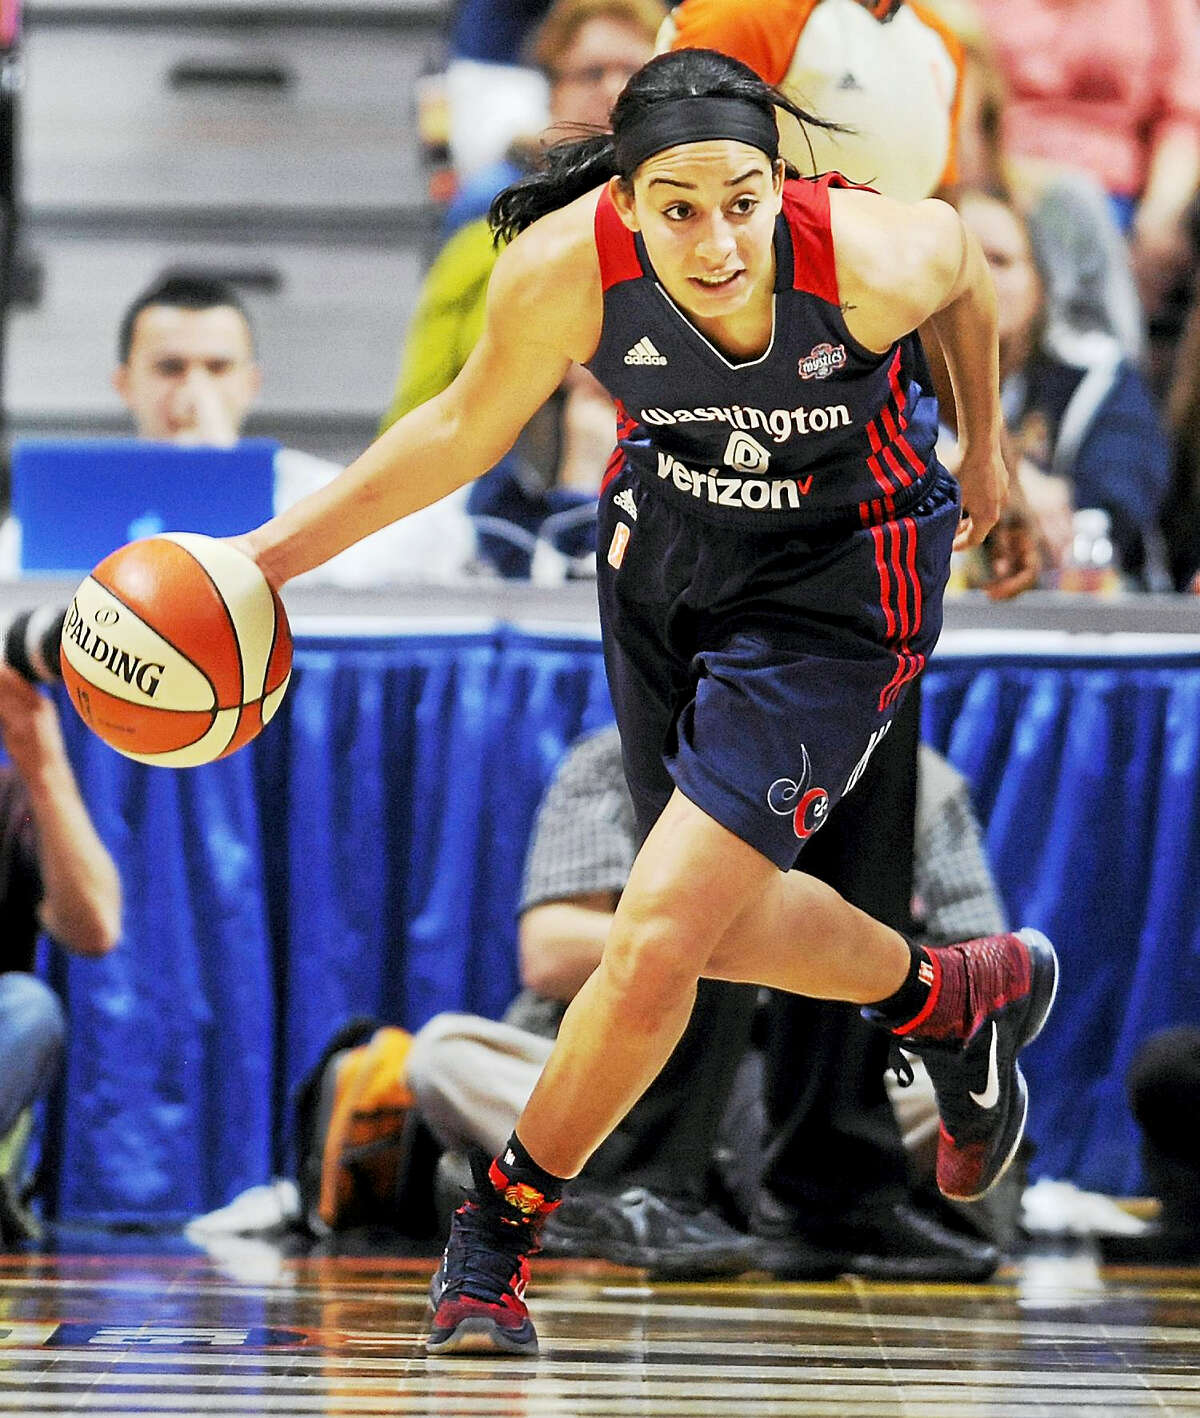 Former UConn star and current Washington Mystics player Bria Hartley is pregnant with her first child.